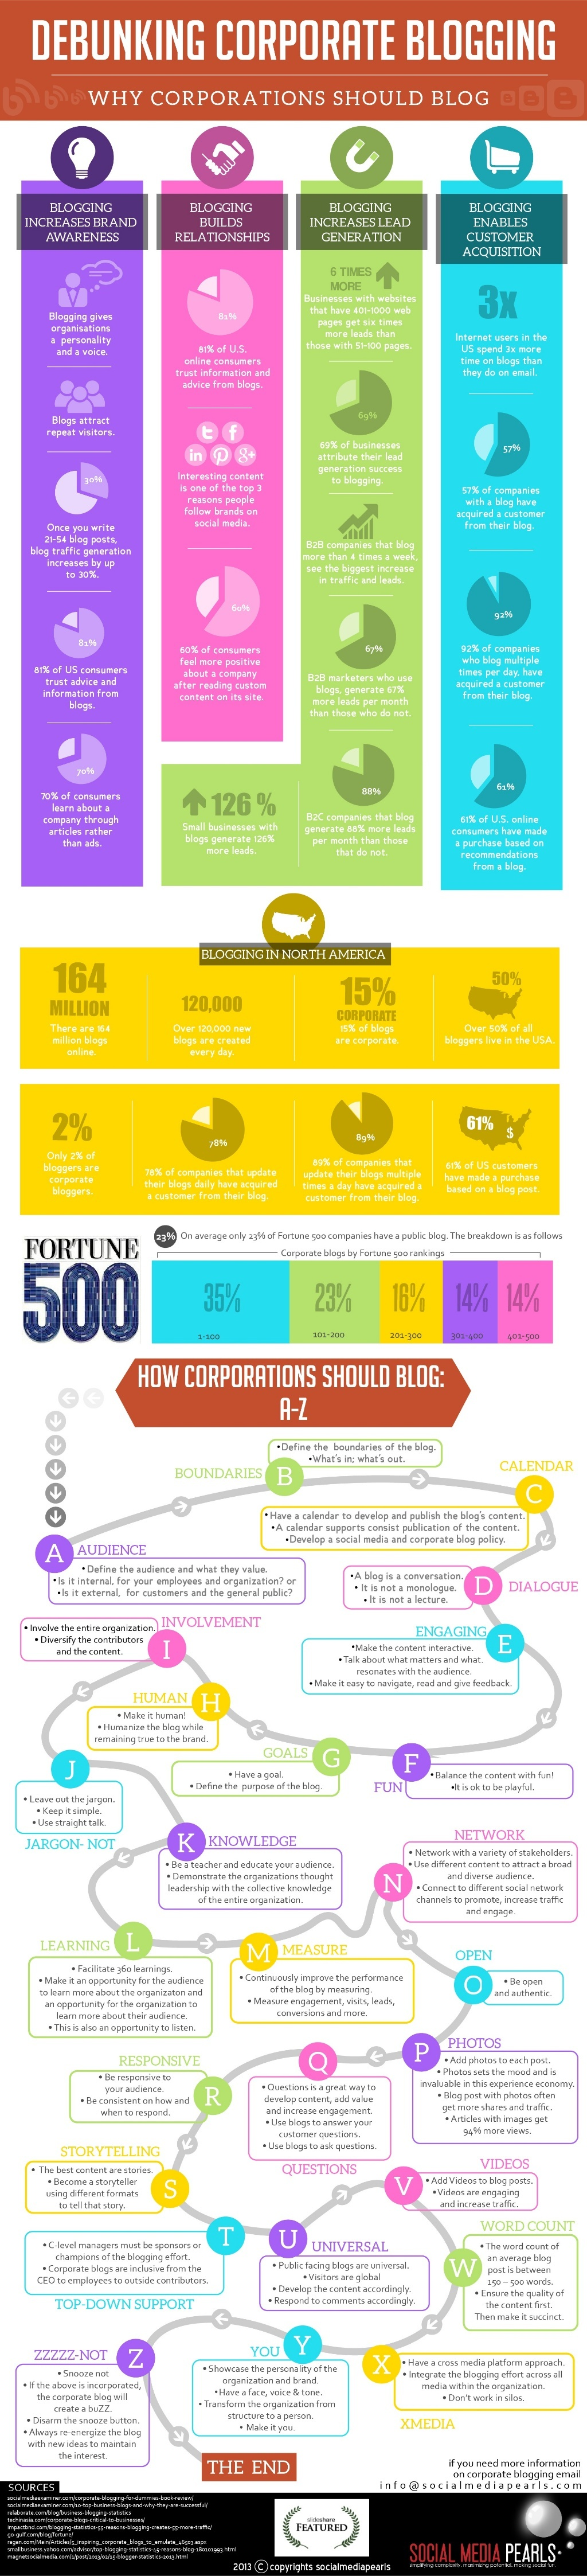 debunking-corporate-blogging-1-1024